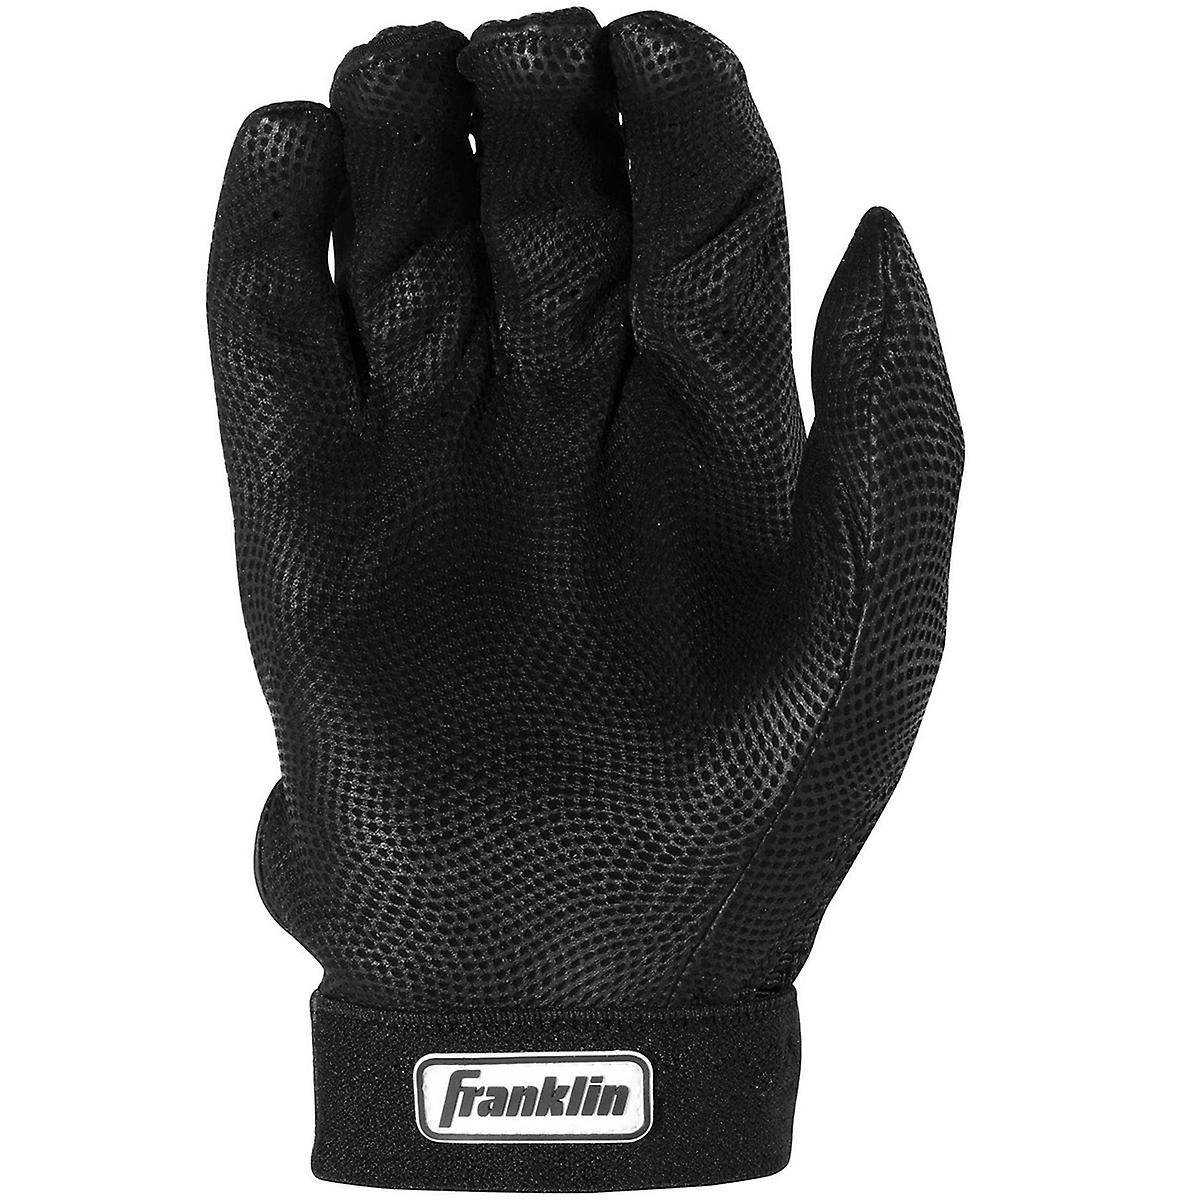 Franklin Adult Pro Classic MLB Batting Gloves - Black/Black